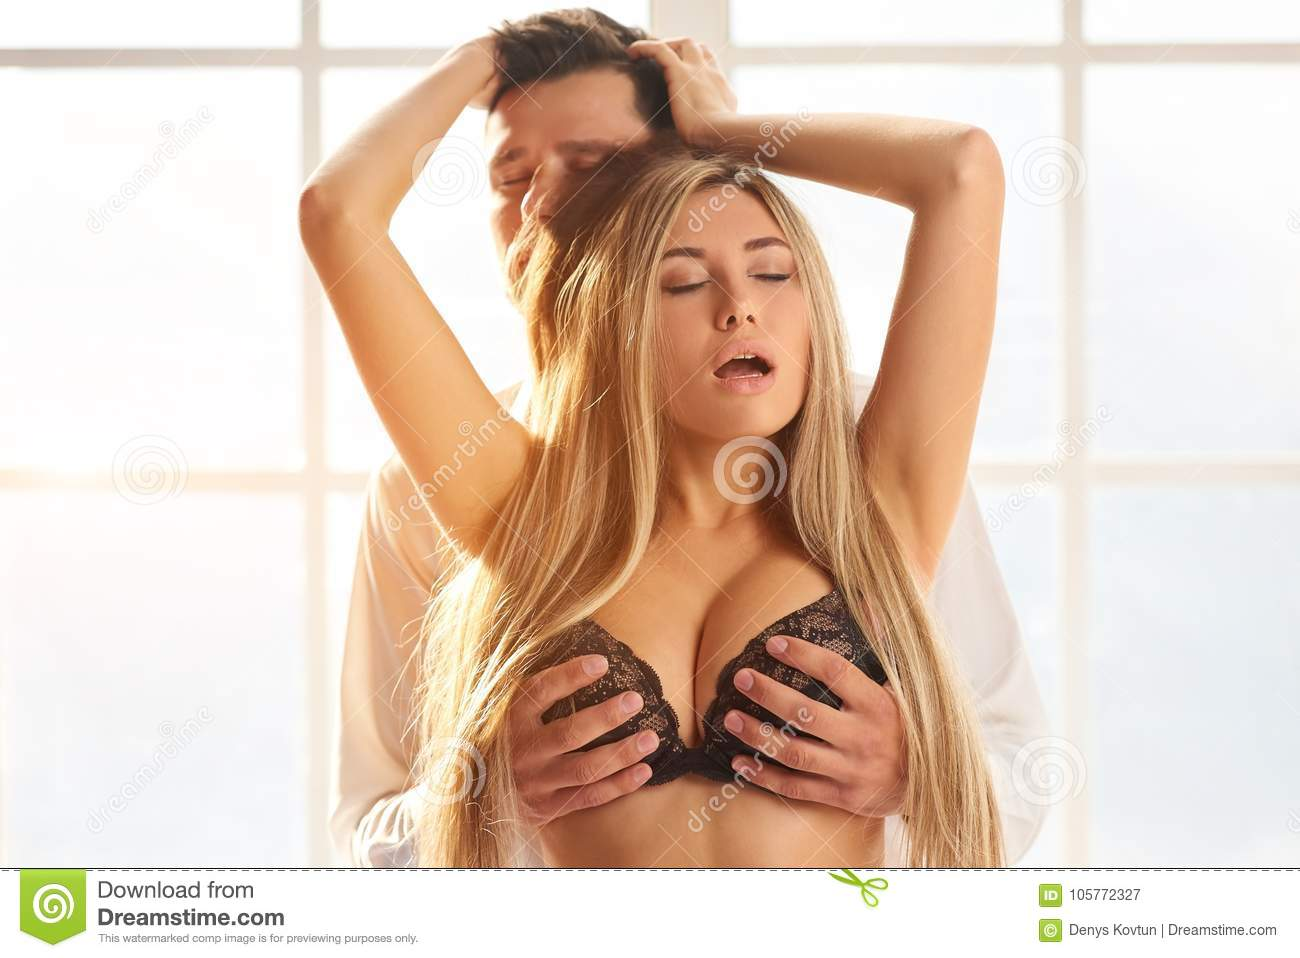 Man touching woman`s breast.